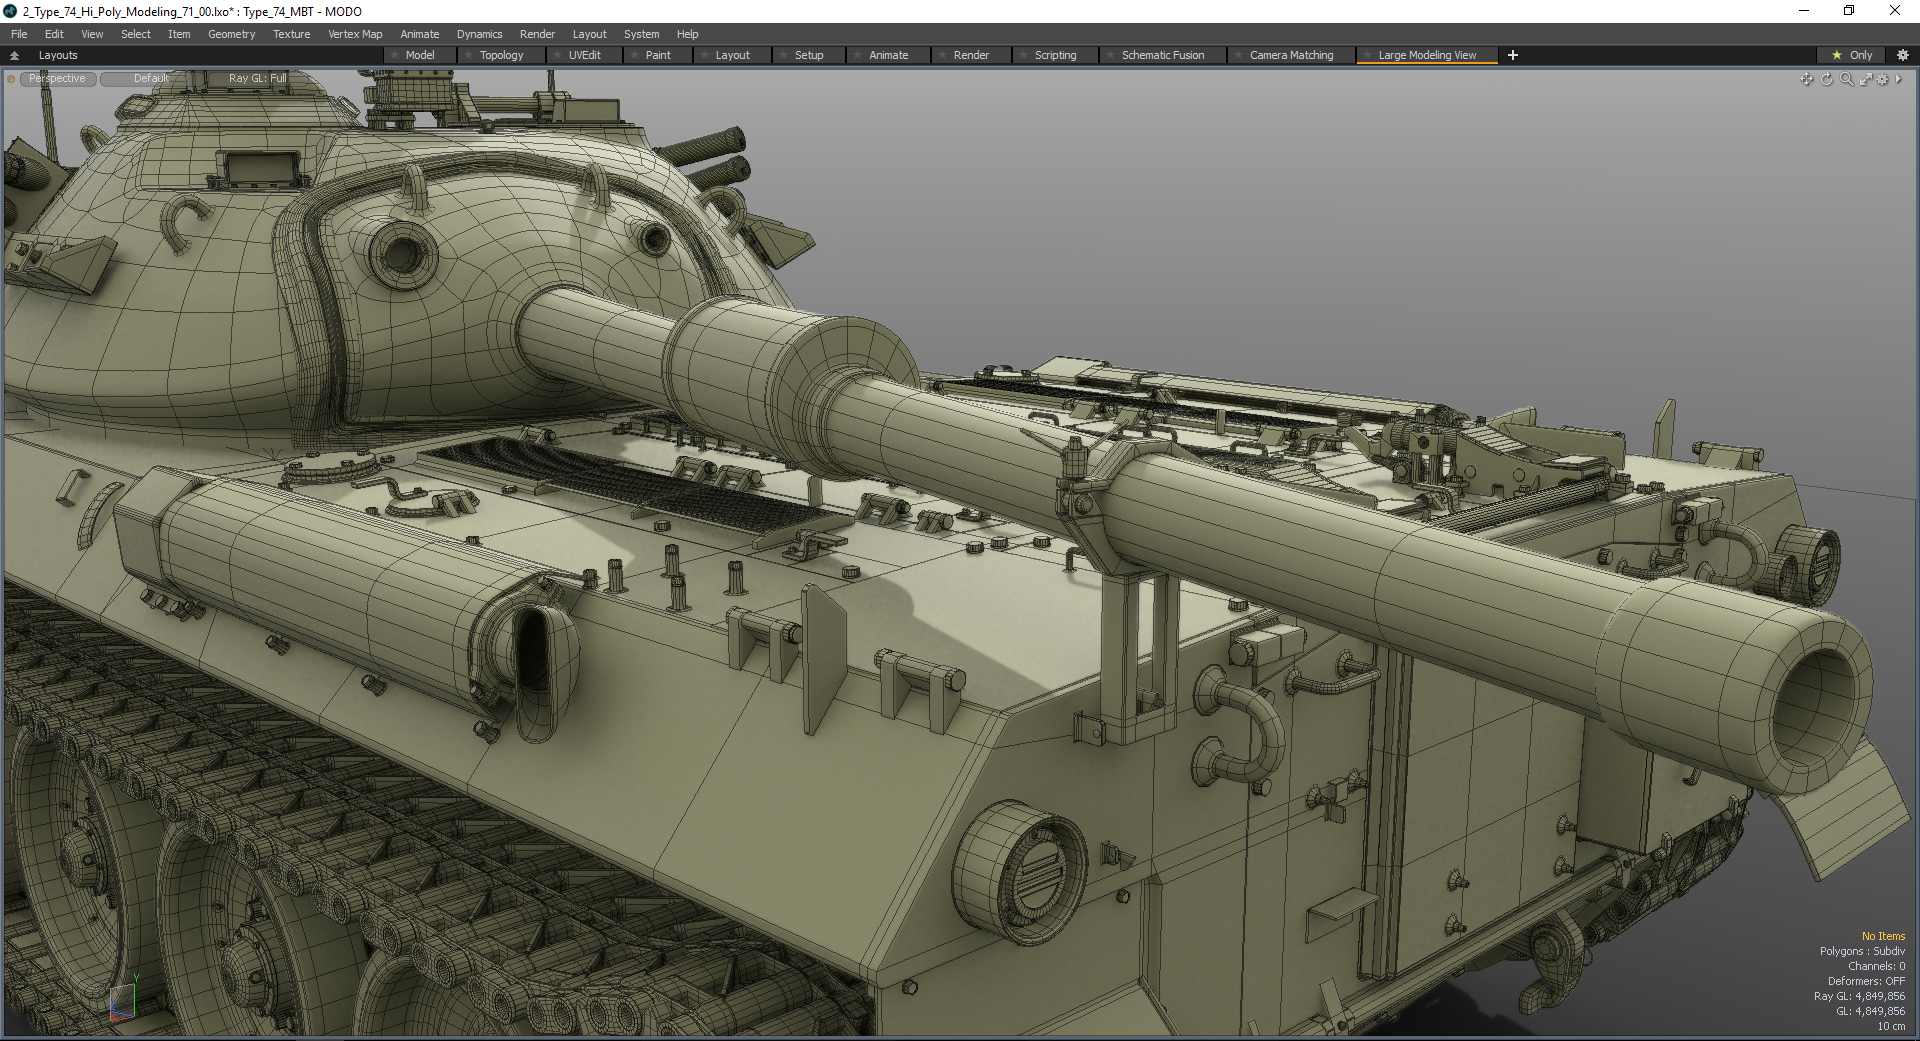 type_74_71hours_modeling_08